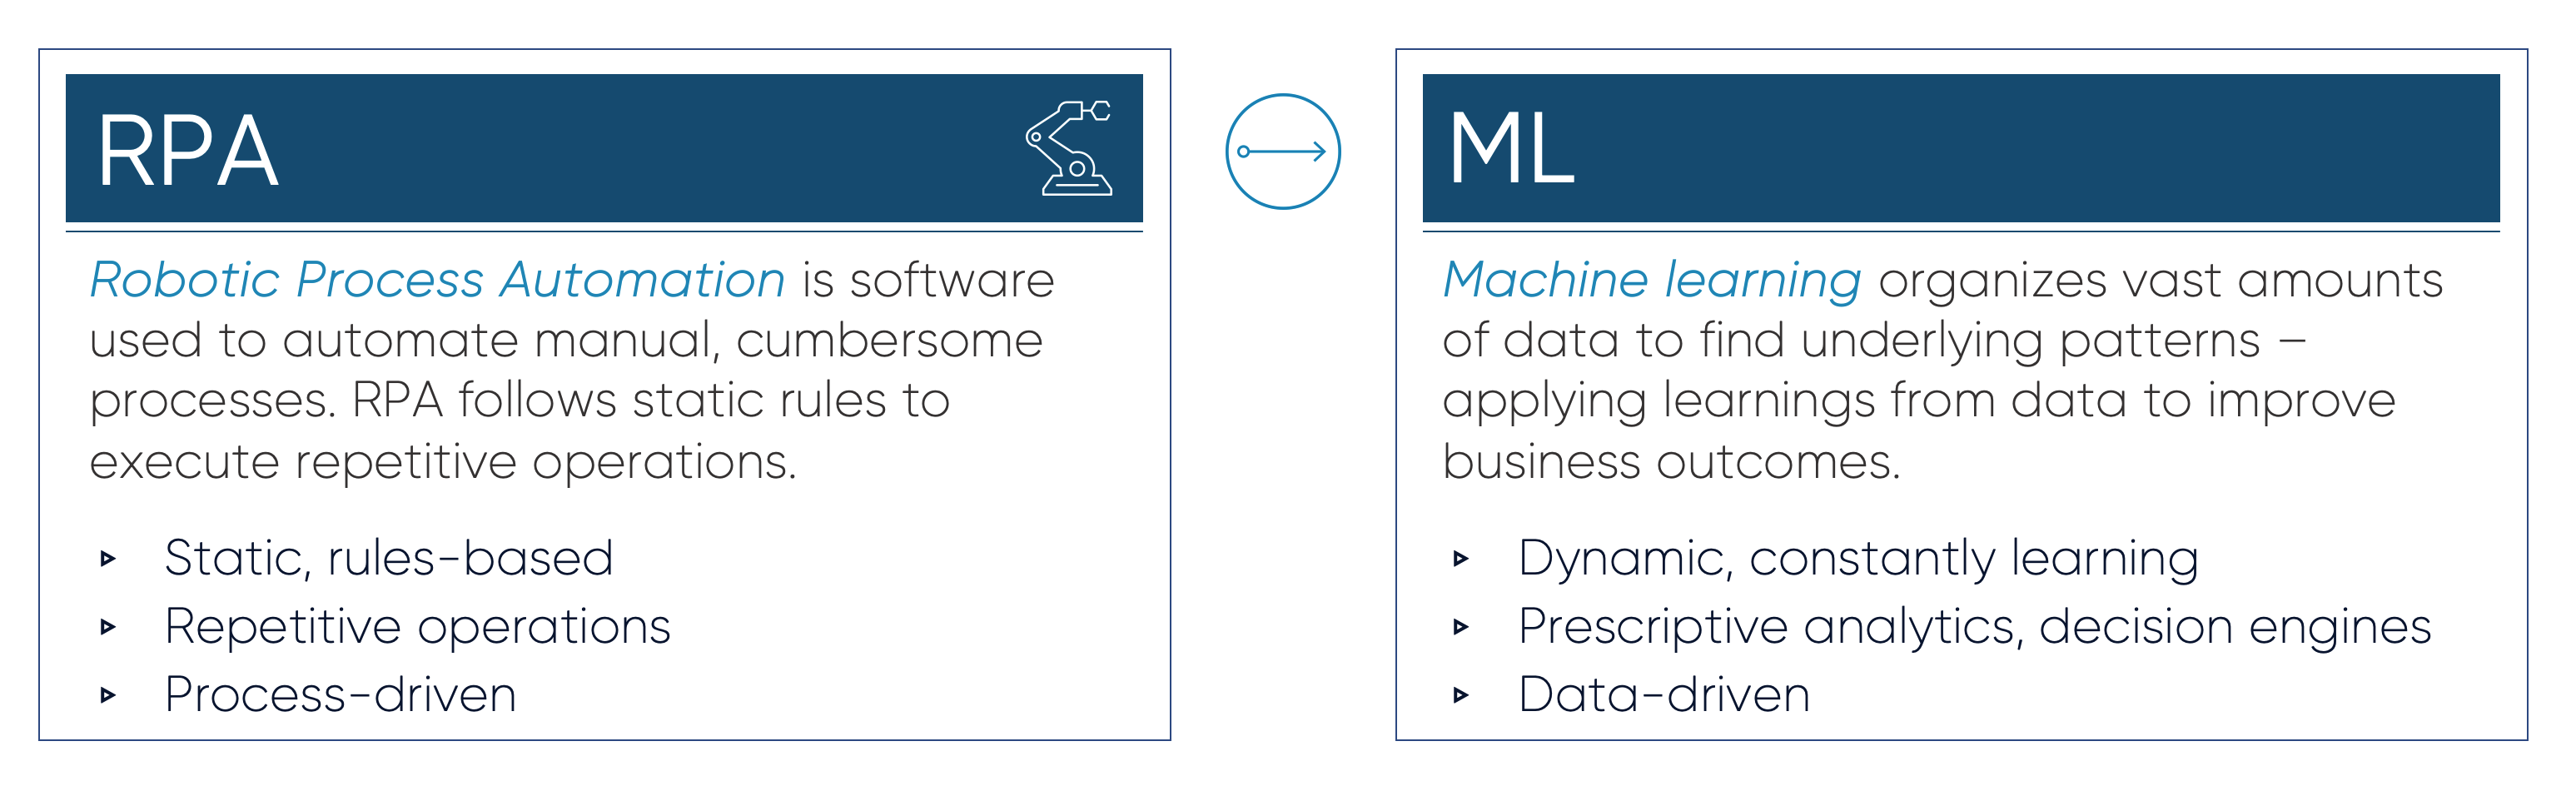 The difference between RAP and Machine Learning (ML)